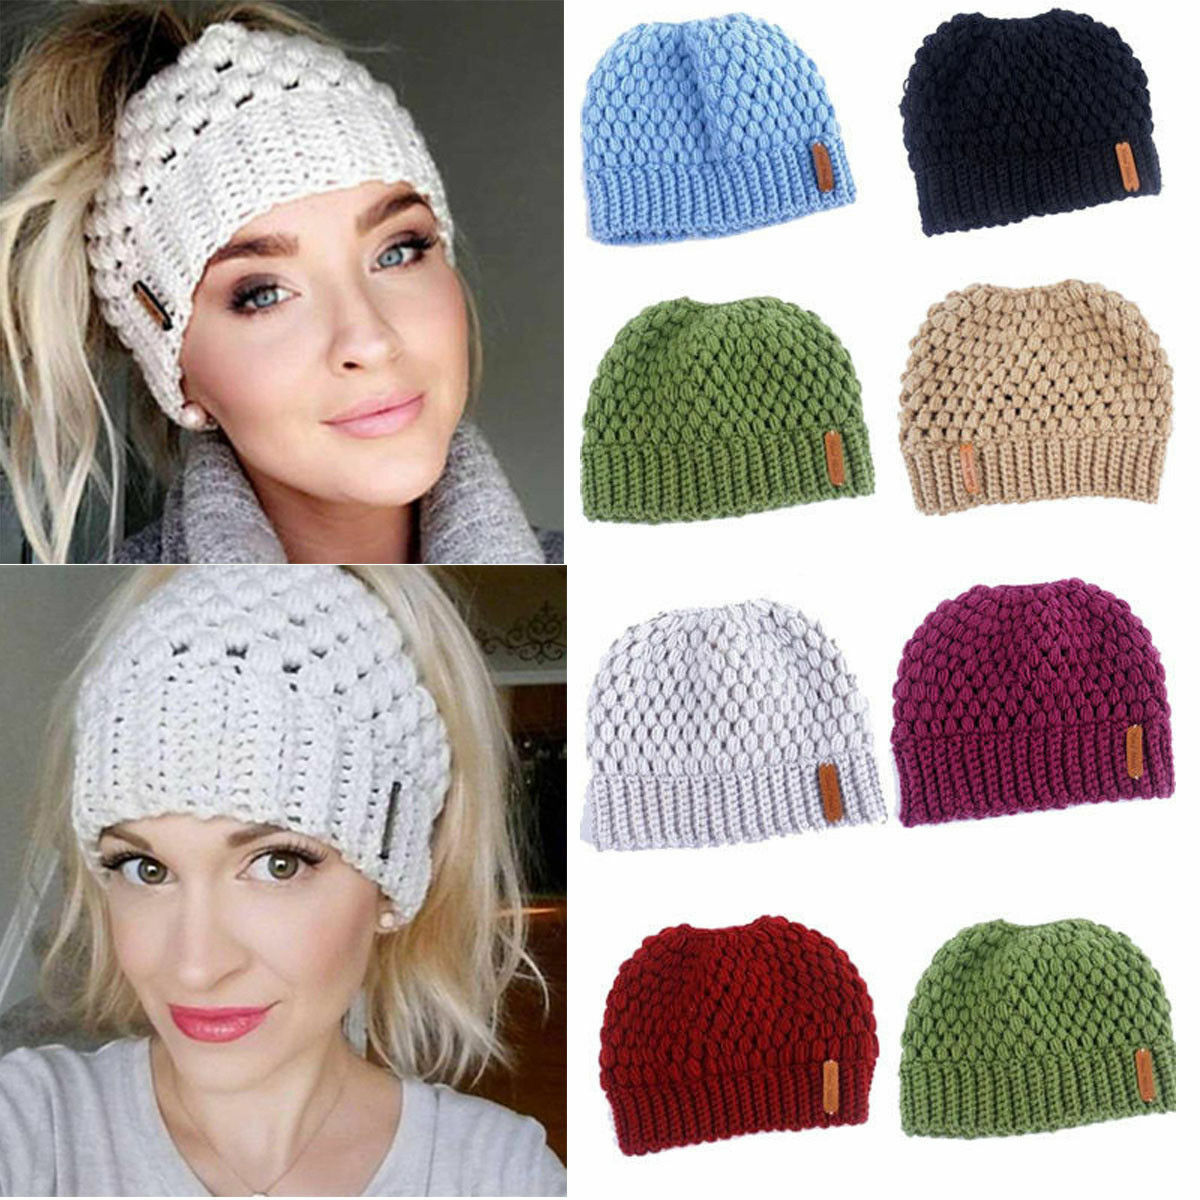 Winter Knitting Hats Winter Women Hat Ladies Girl Stretch Knit Hat With Tag Messy Bun Ponytail Beanie Holey Warm Hats Caps